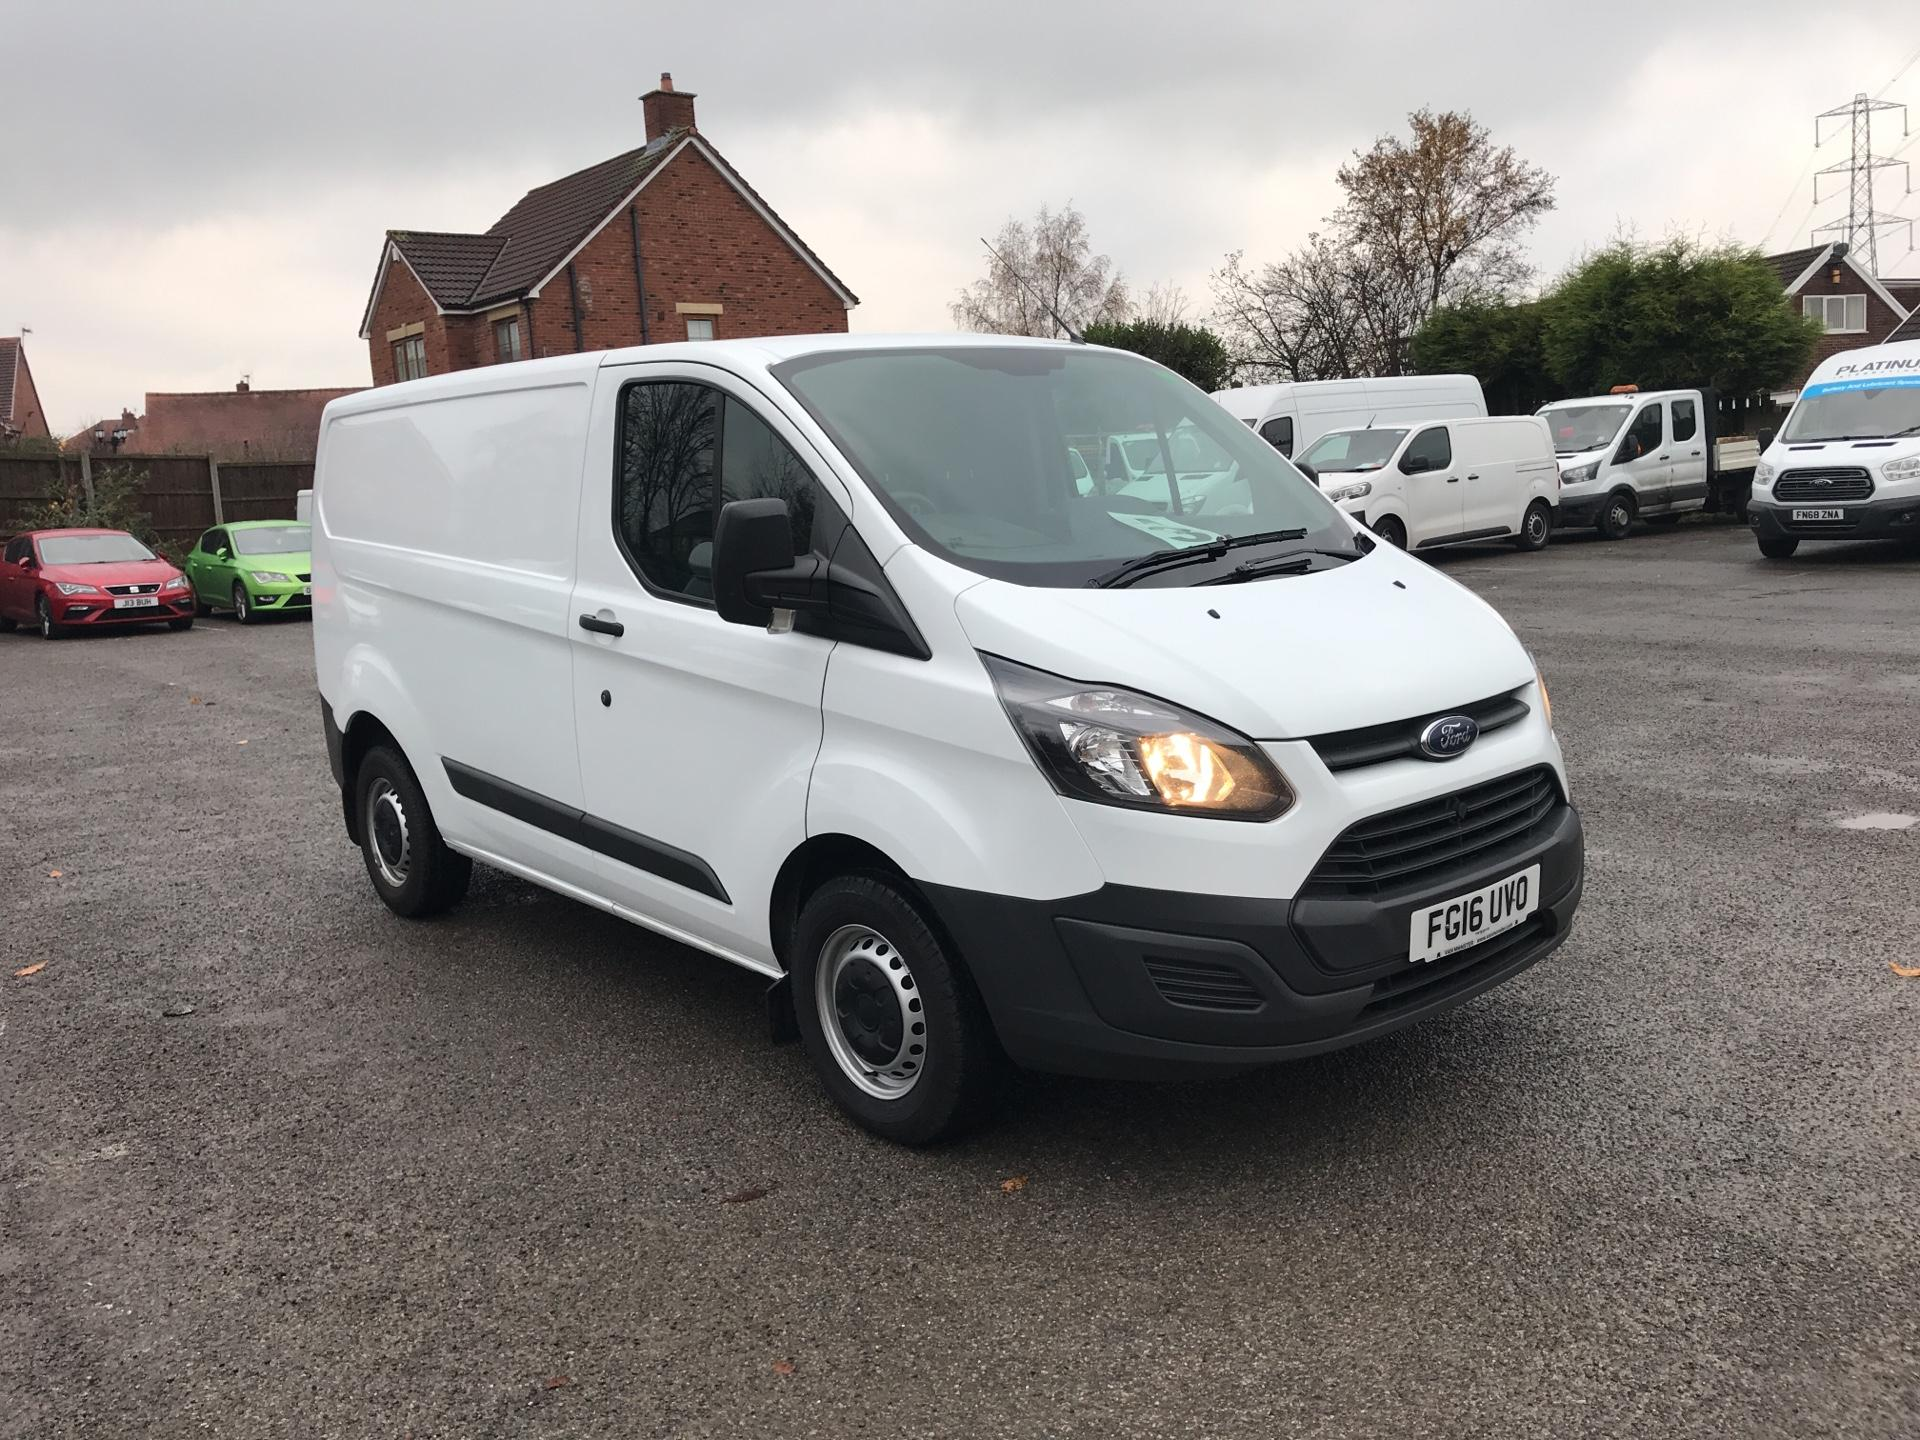 2016 Ford Transit Custom 290 L1 DIESEL FWD 2.2  TDCI 100PS LOW ROOF VAN EURO 5 (FG16UVO)